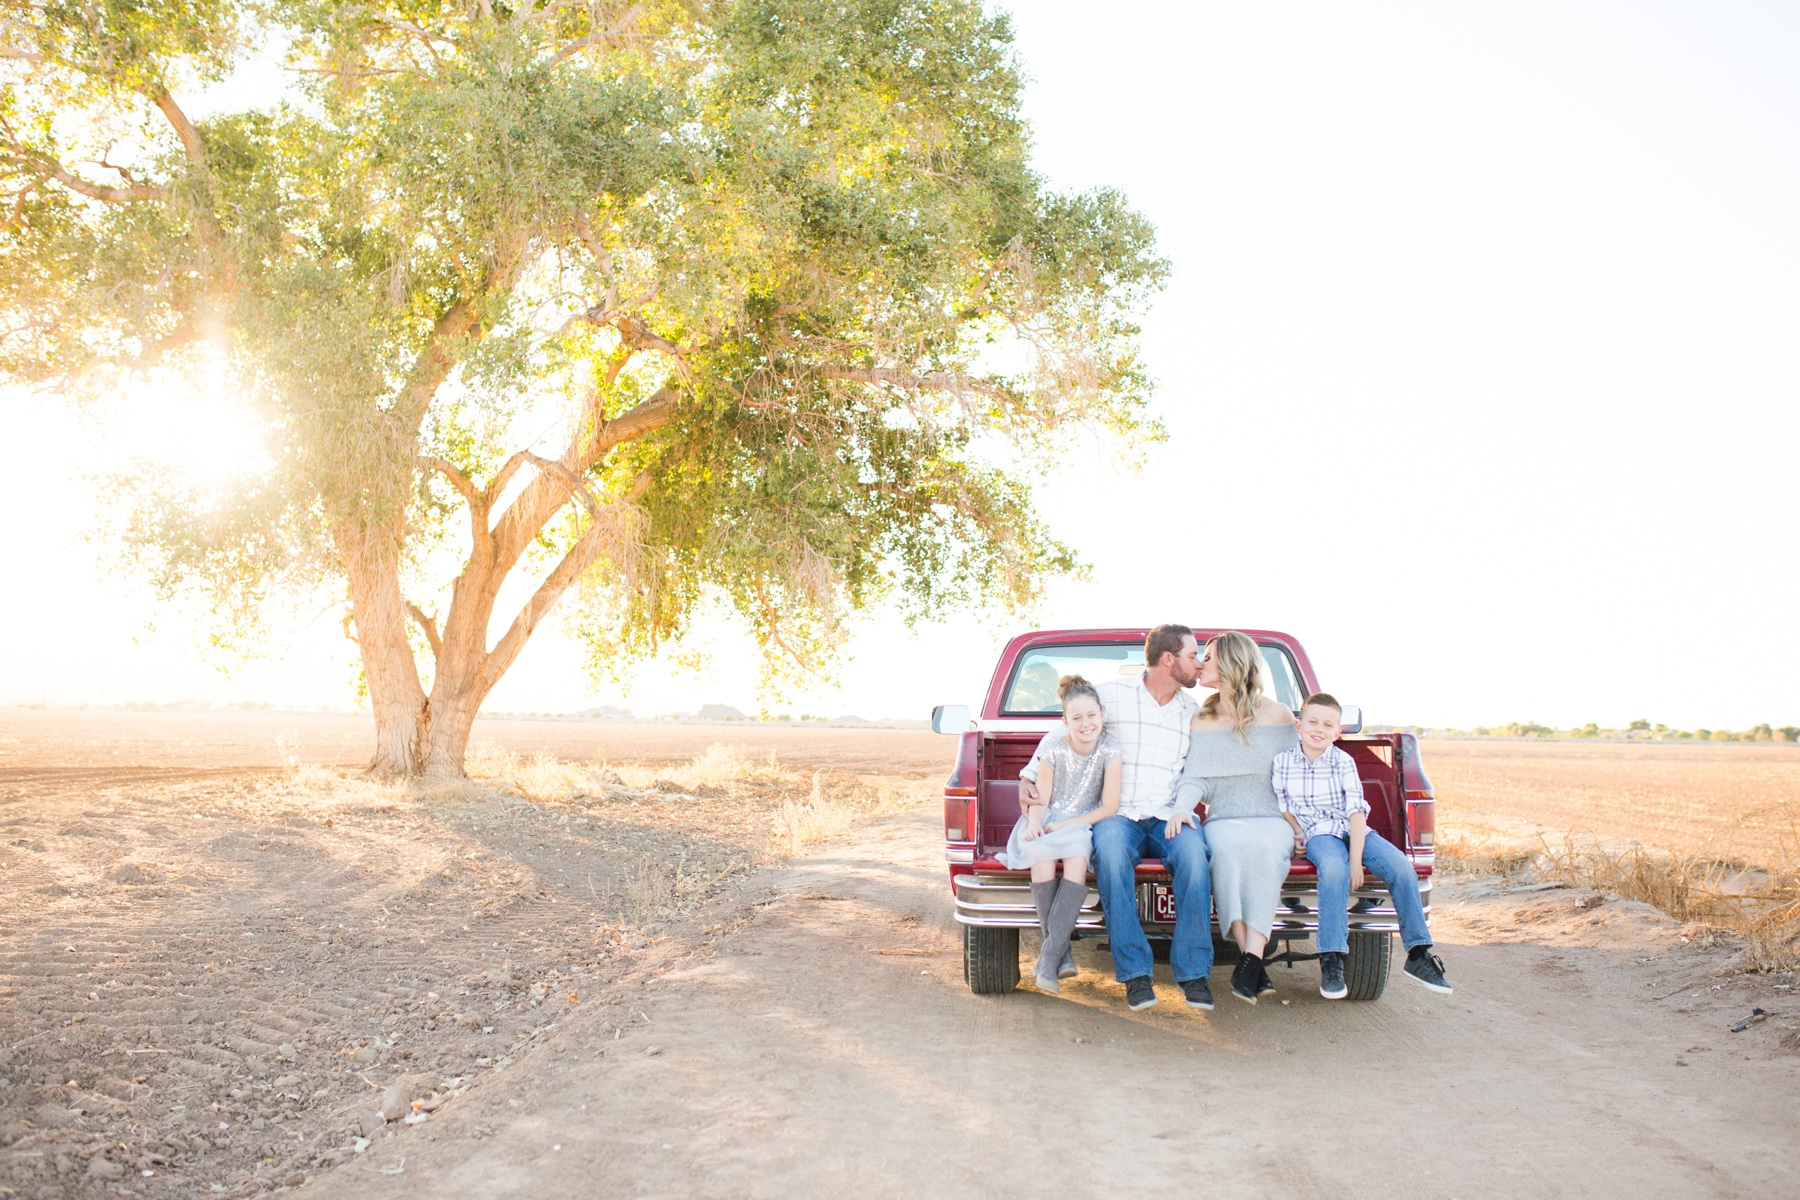 Family photos in old truck under tree at sunset